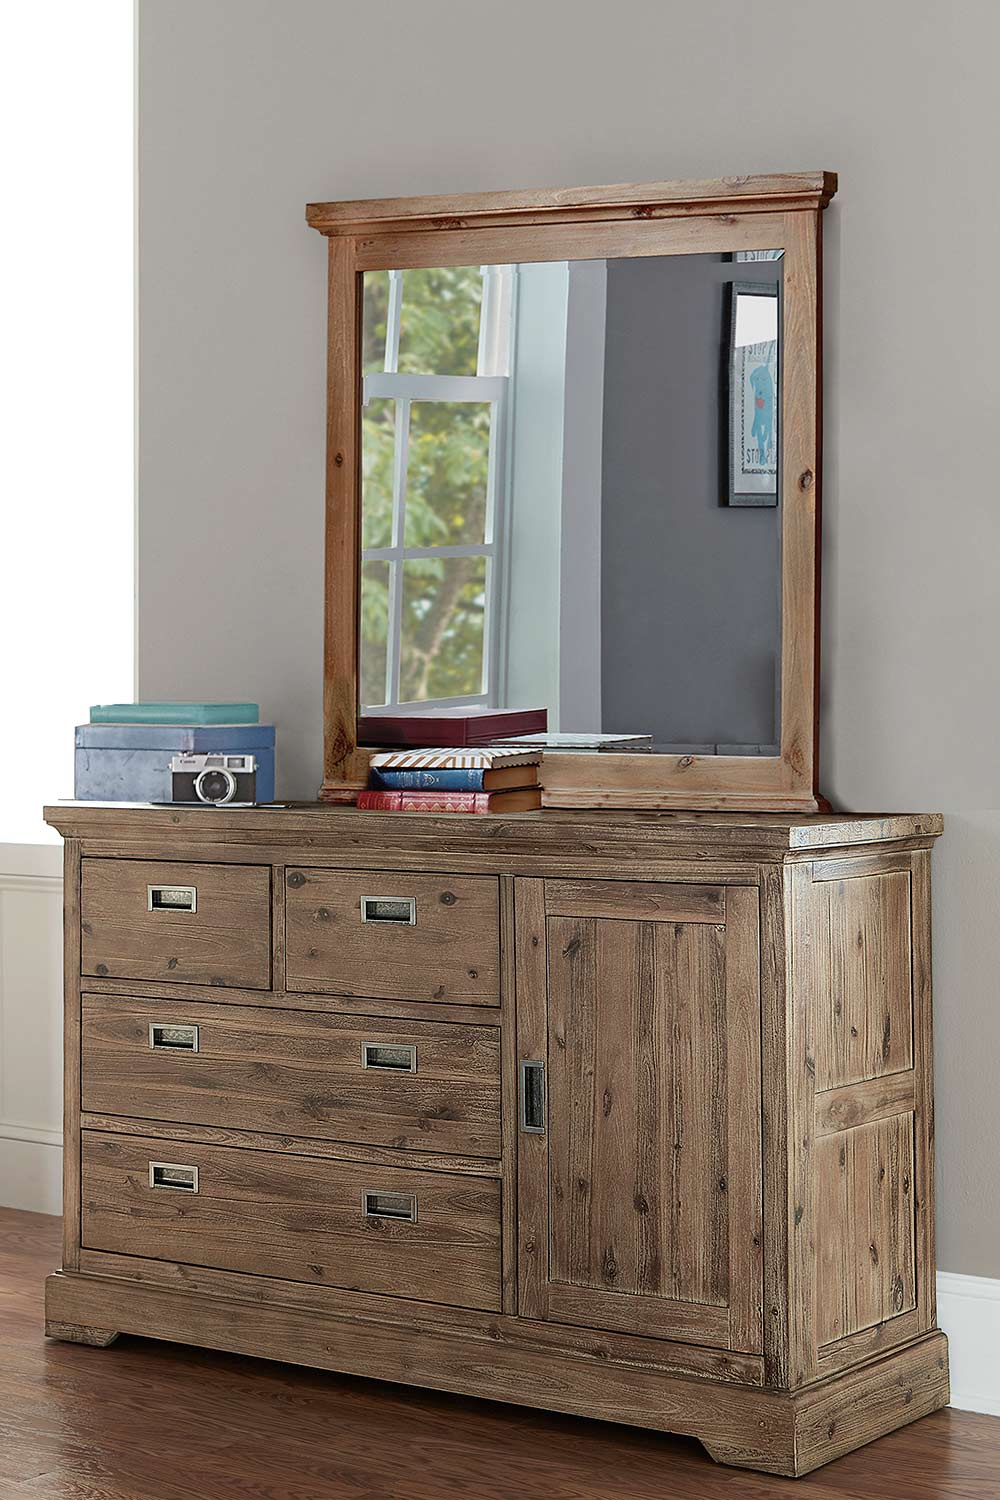 NE Kids Oxford 4 Drawer Dresser with Door and Mirror - Cocoa